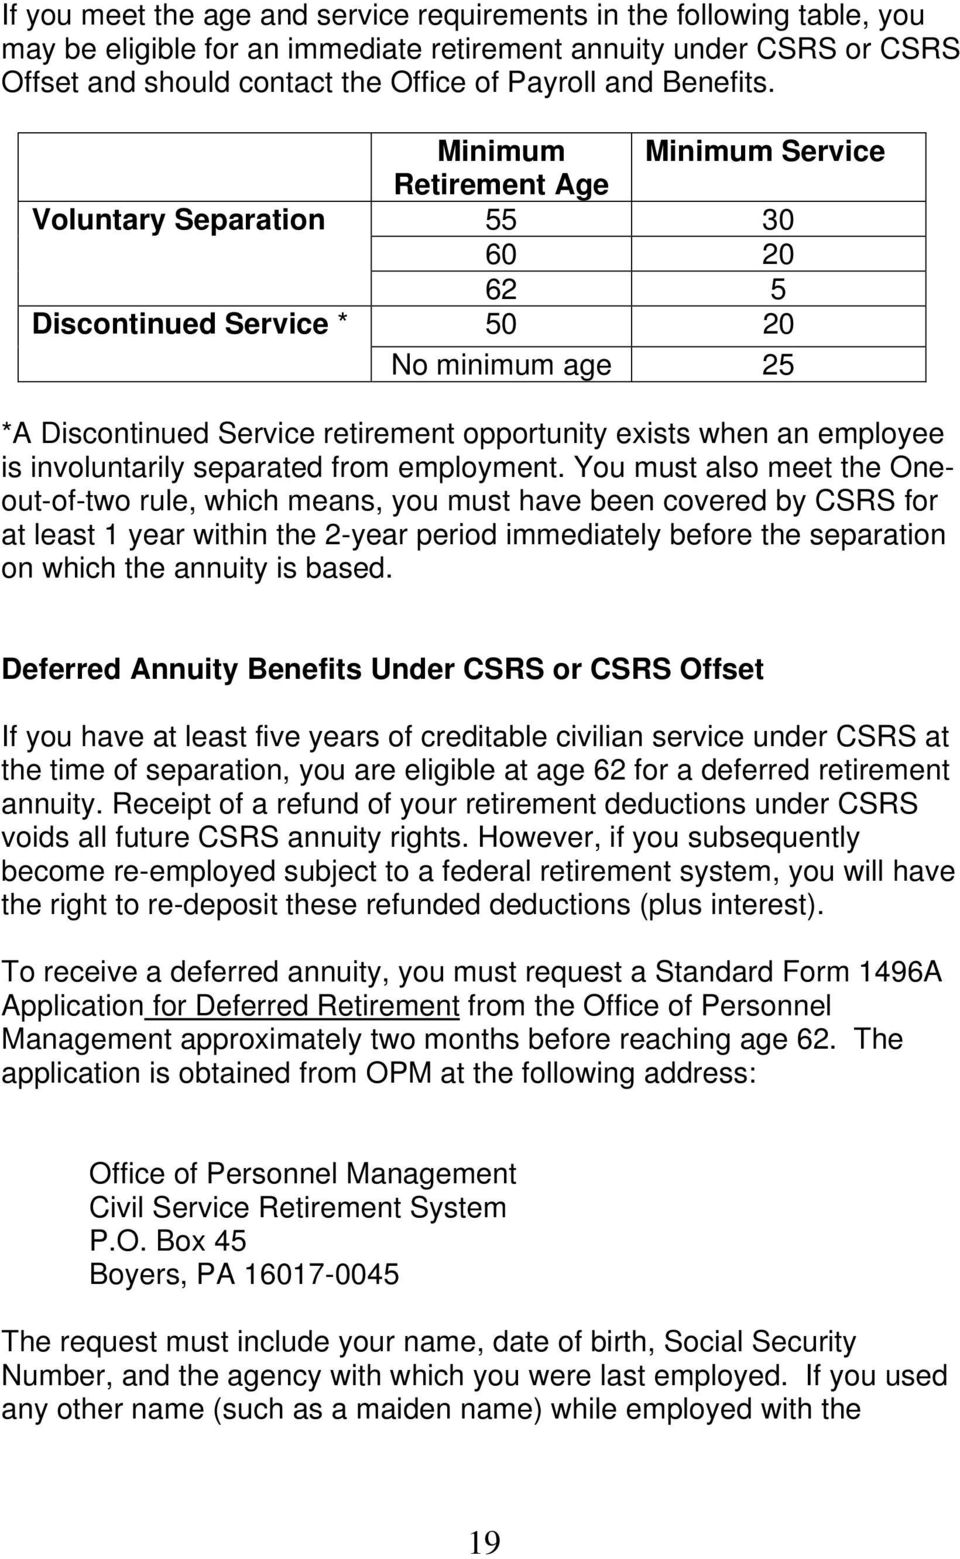 Minimum Minimum Service Retirement Age Voluntary Separation 55 30 60 20 62 5 Discontinued Service * 50 20 No minimum age 25 *A Discontinued Service retirement opportunity exists when an employee is